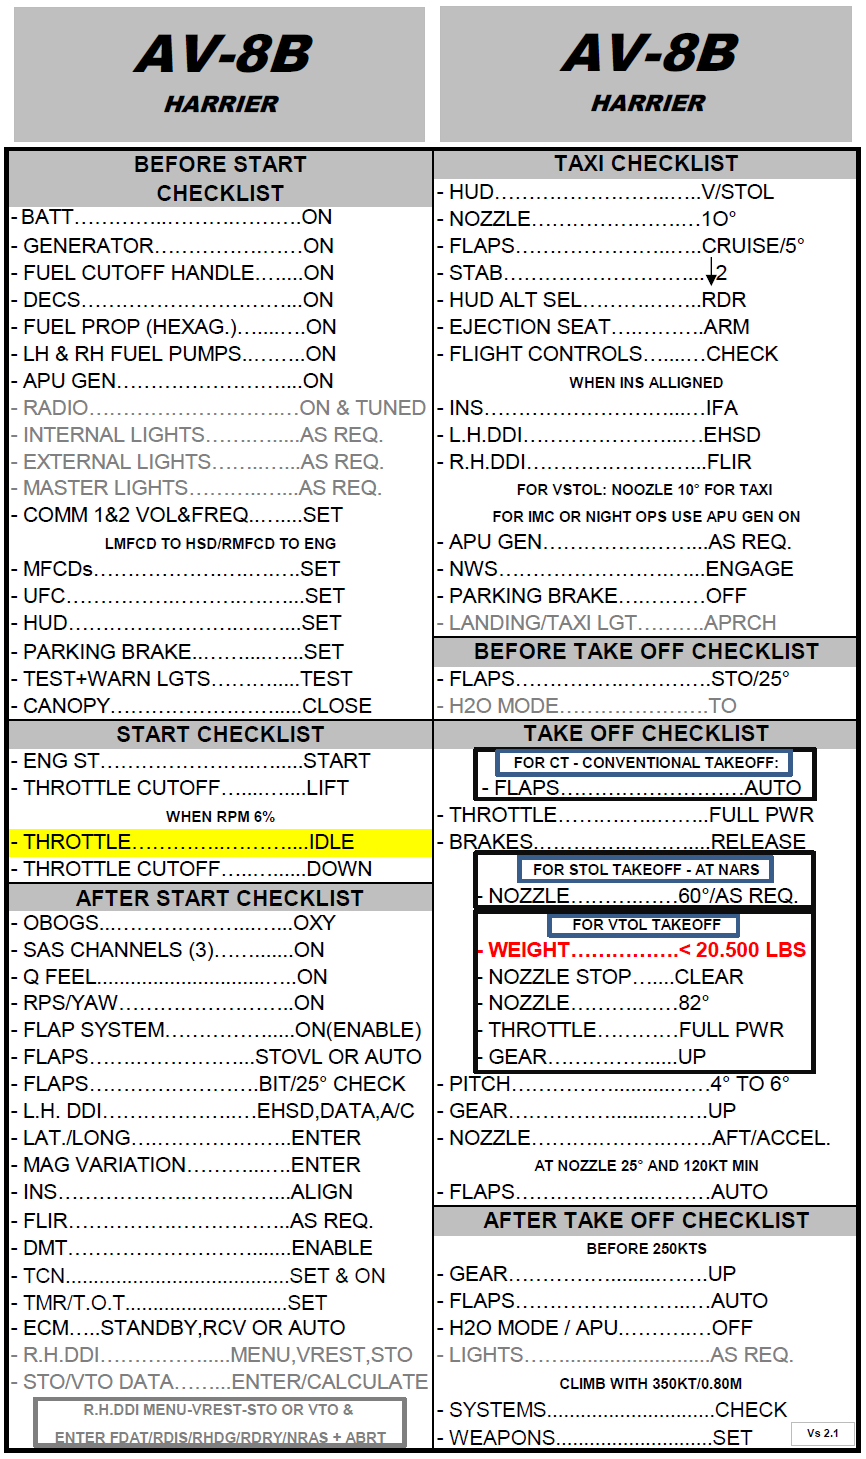 AV-8BNA Harrier Quick Checklist and Weapons Checklist. (Update vs 2.1)